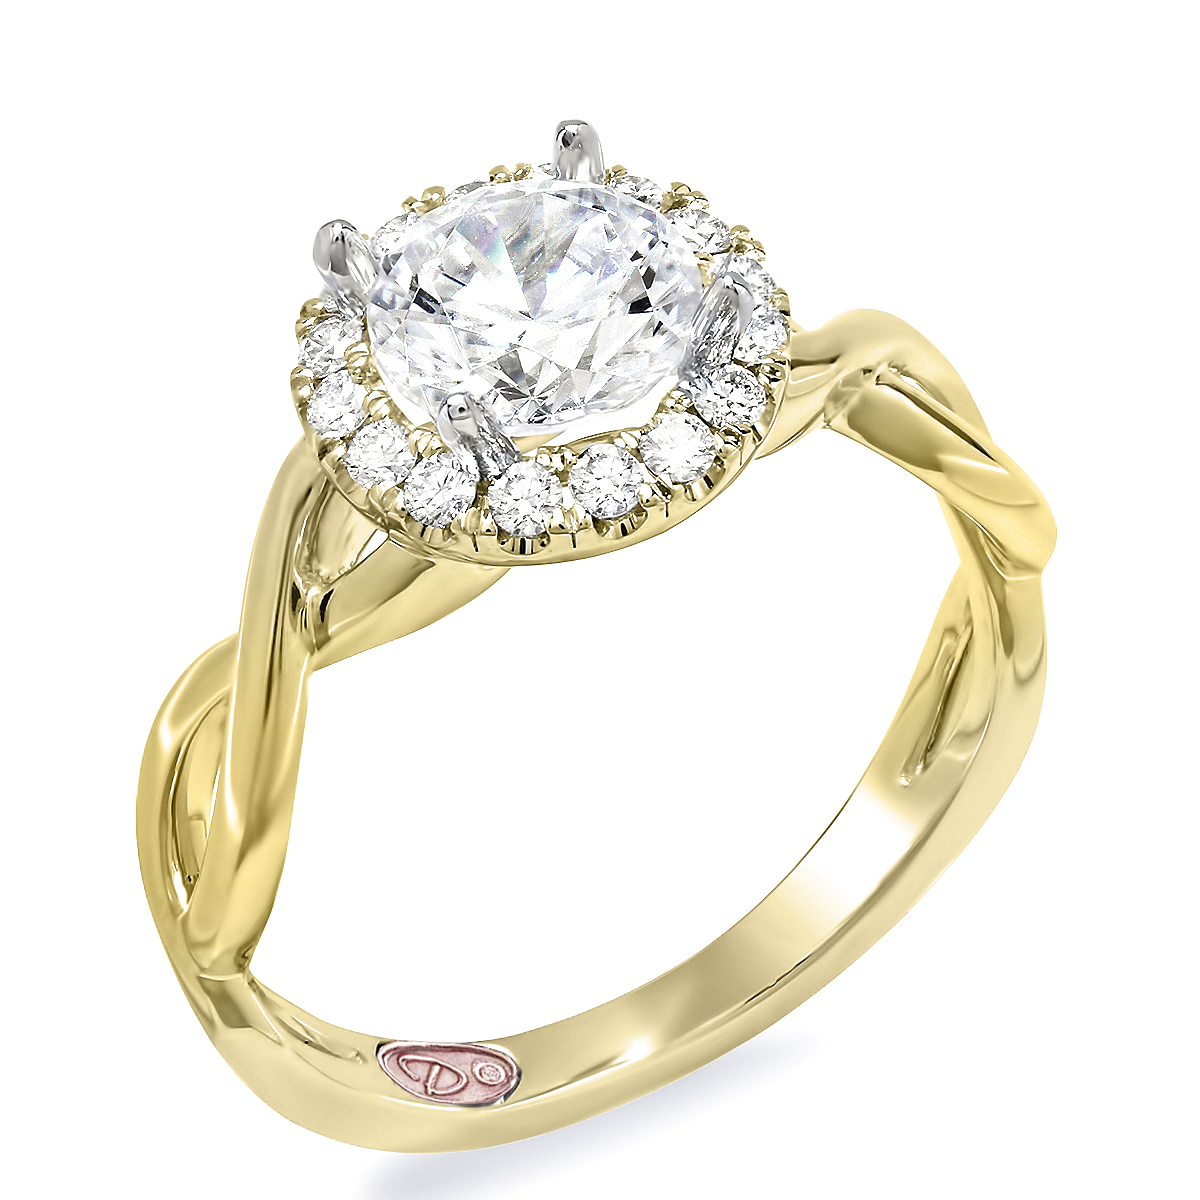 jewellers jewelry gold rings jewellery dharam